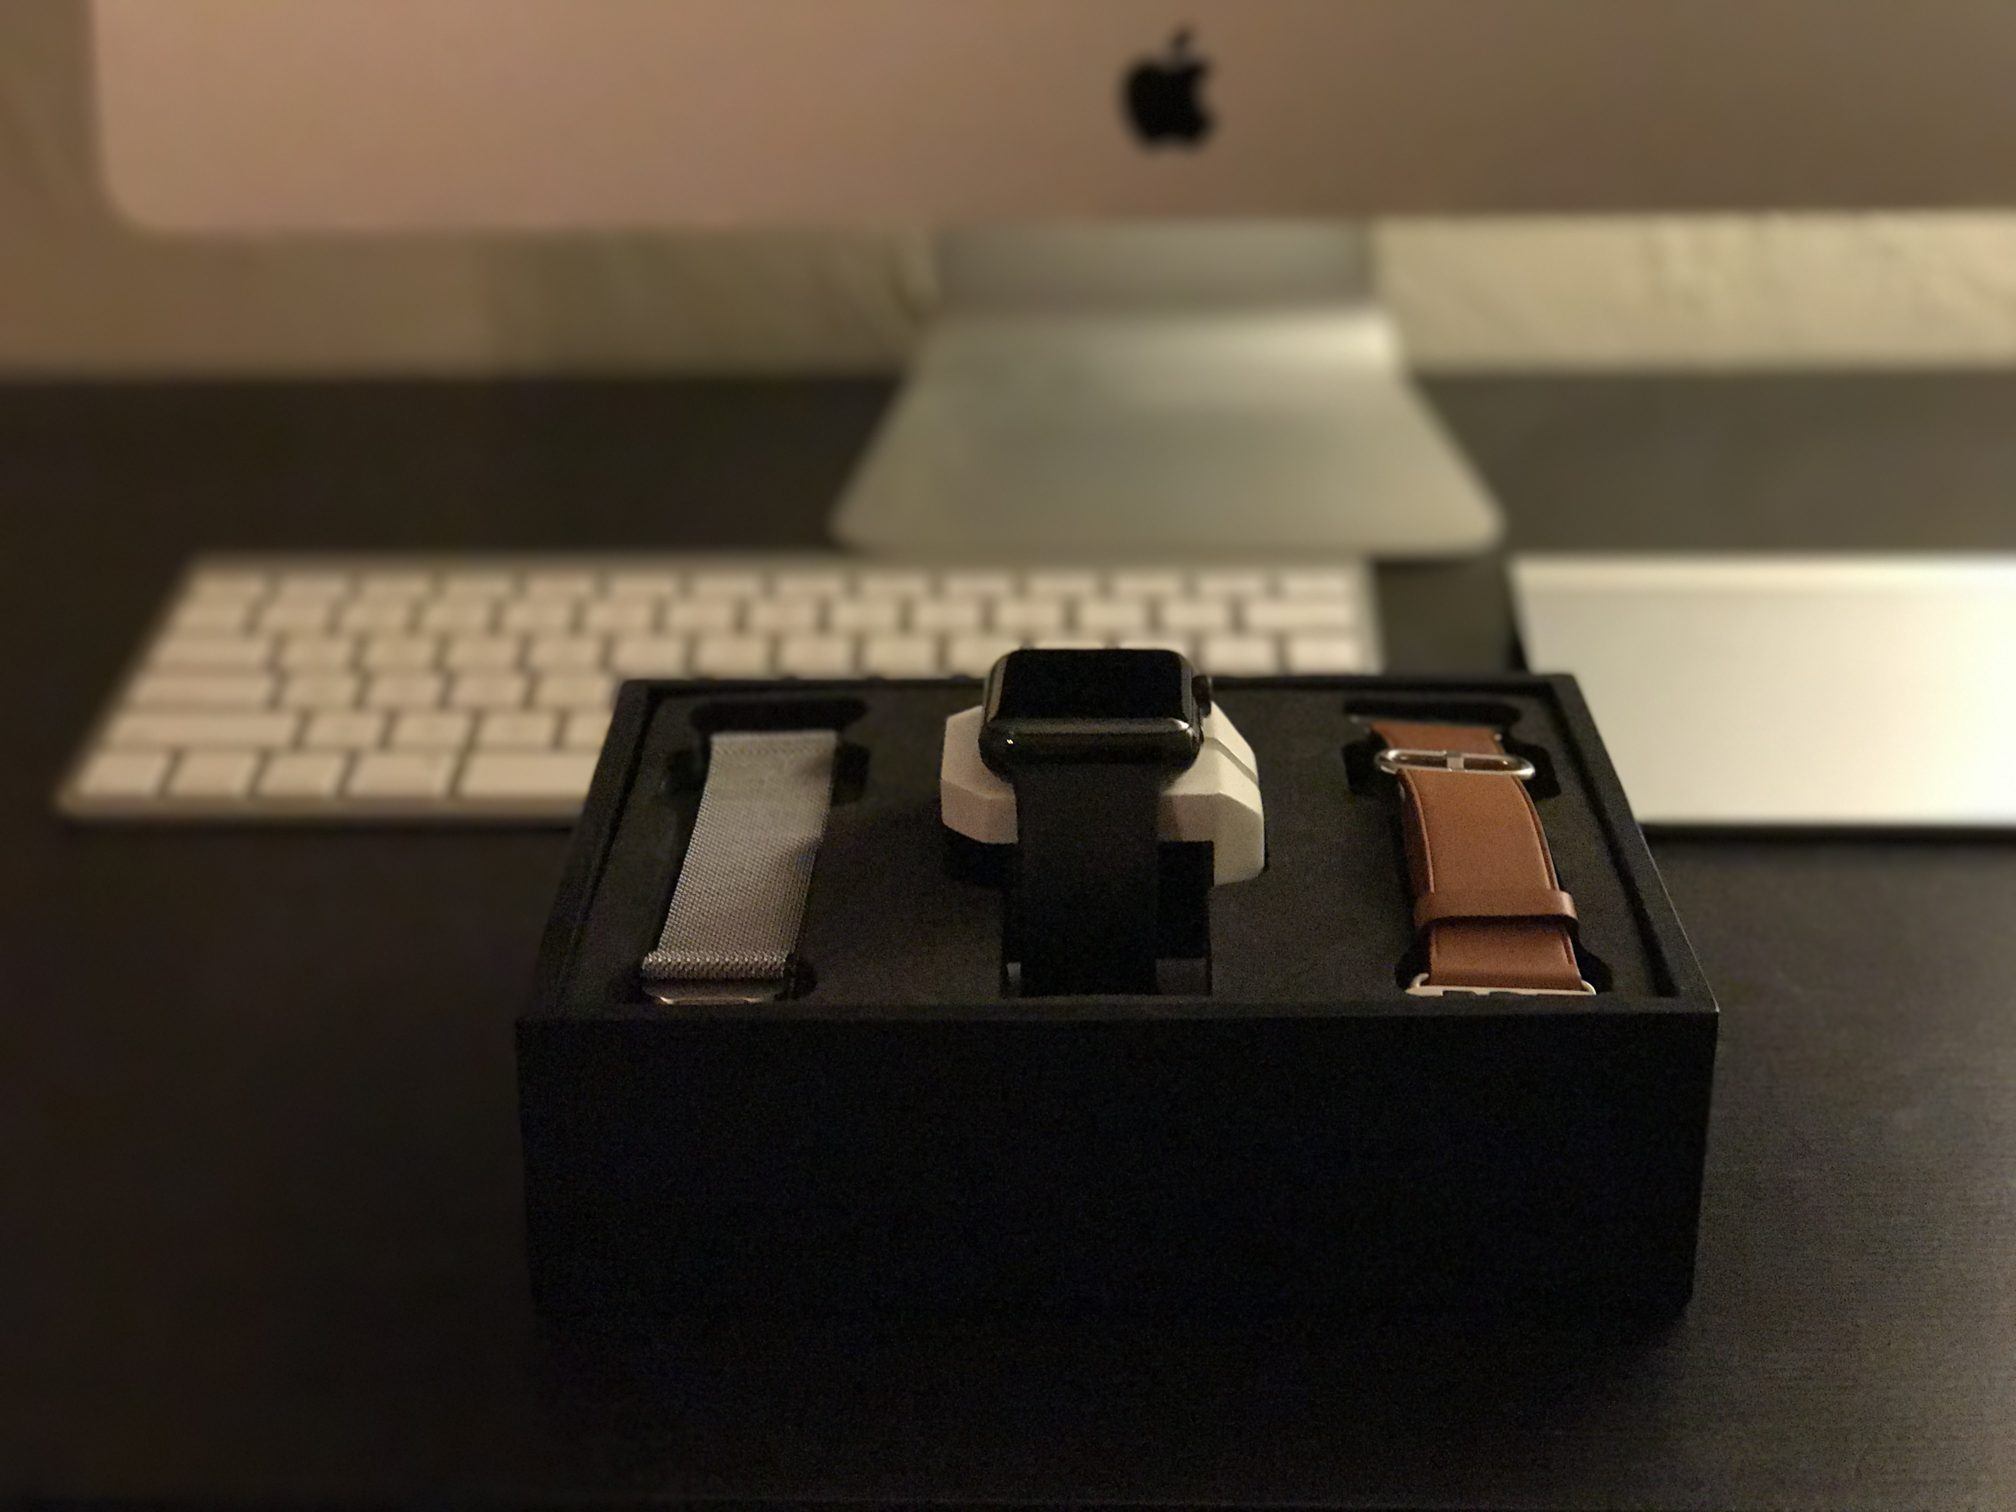 Apple Watch Display P2